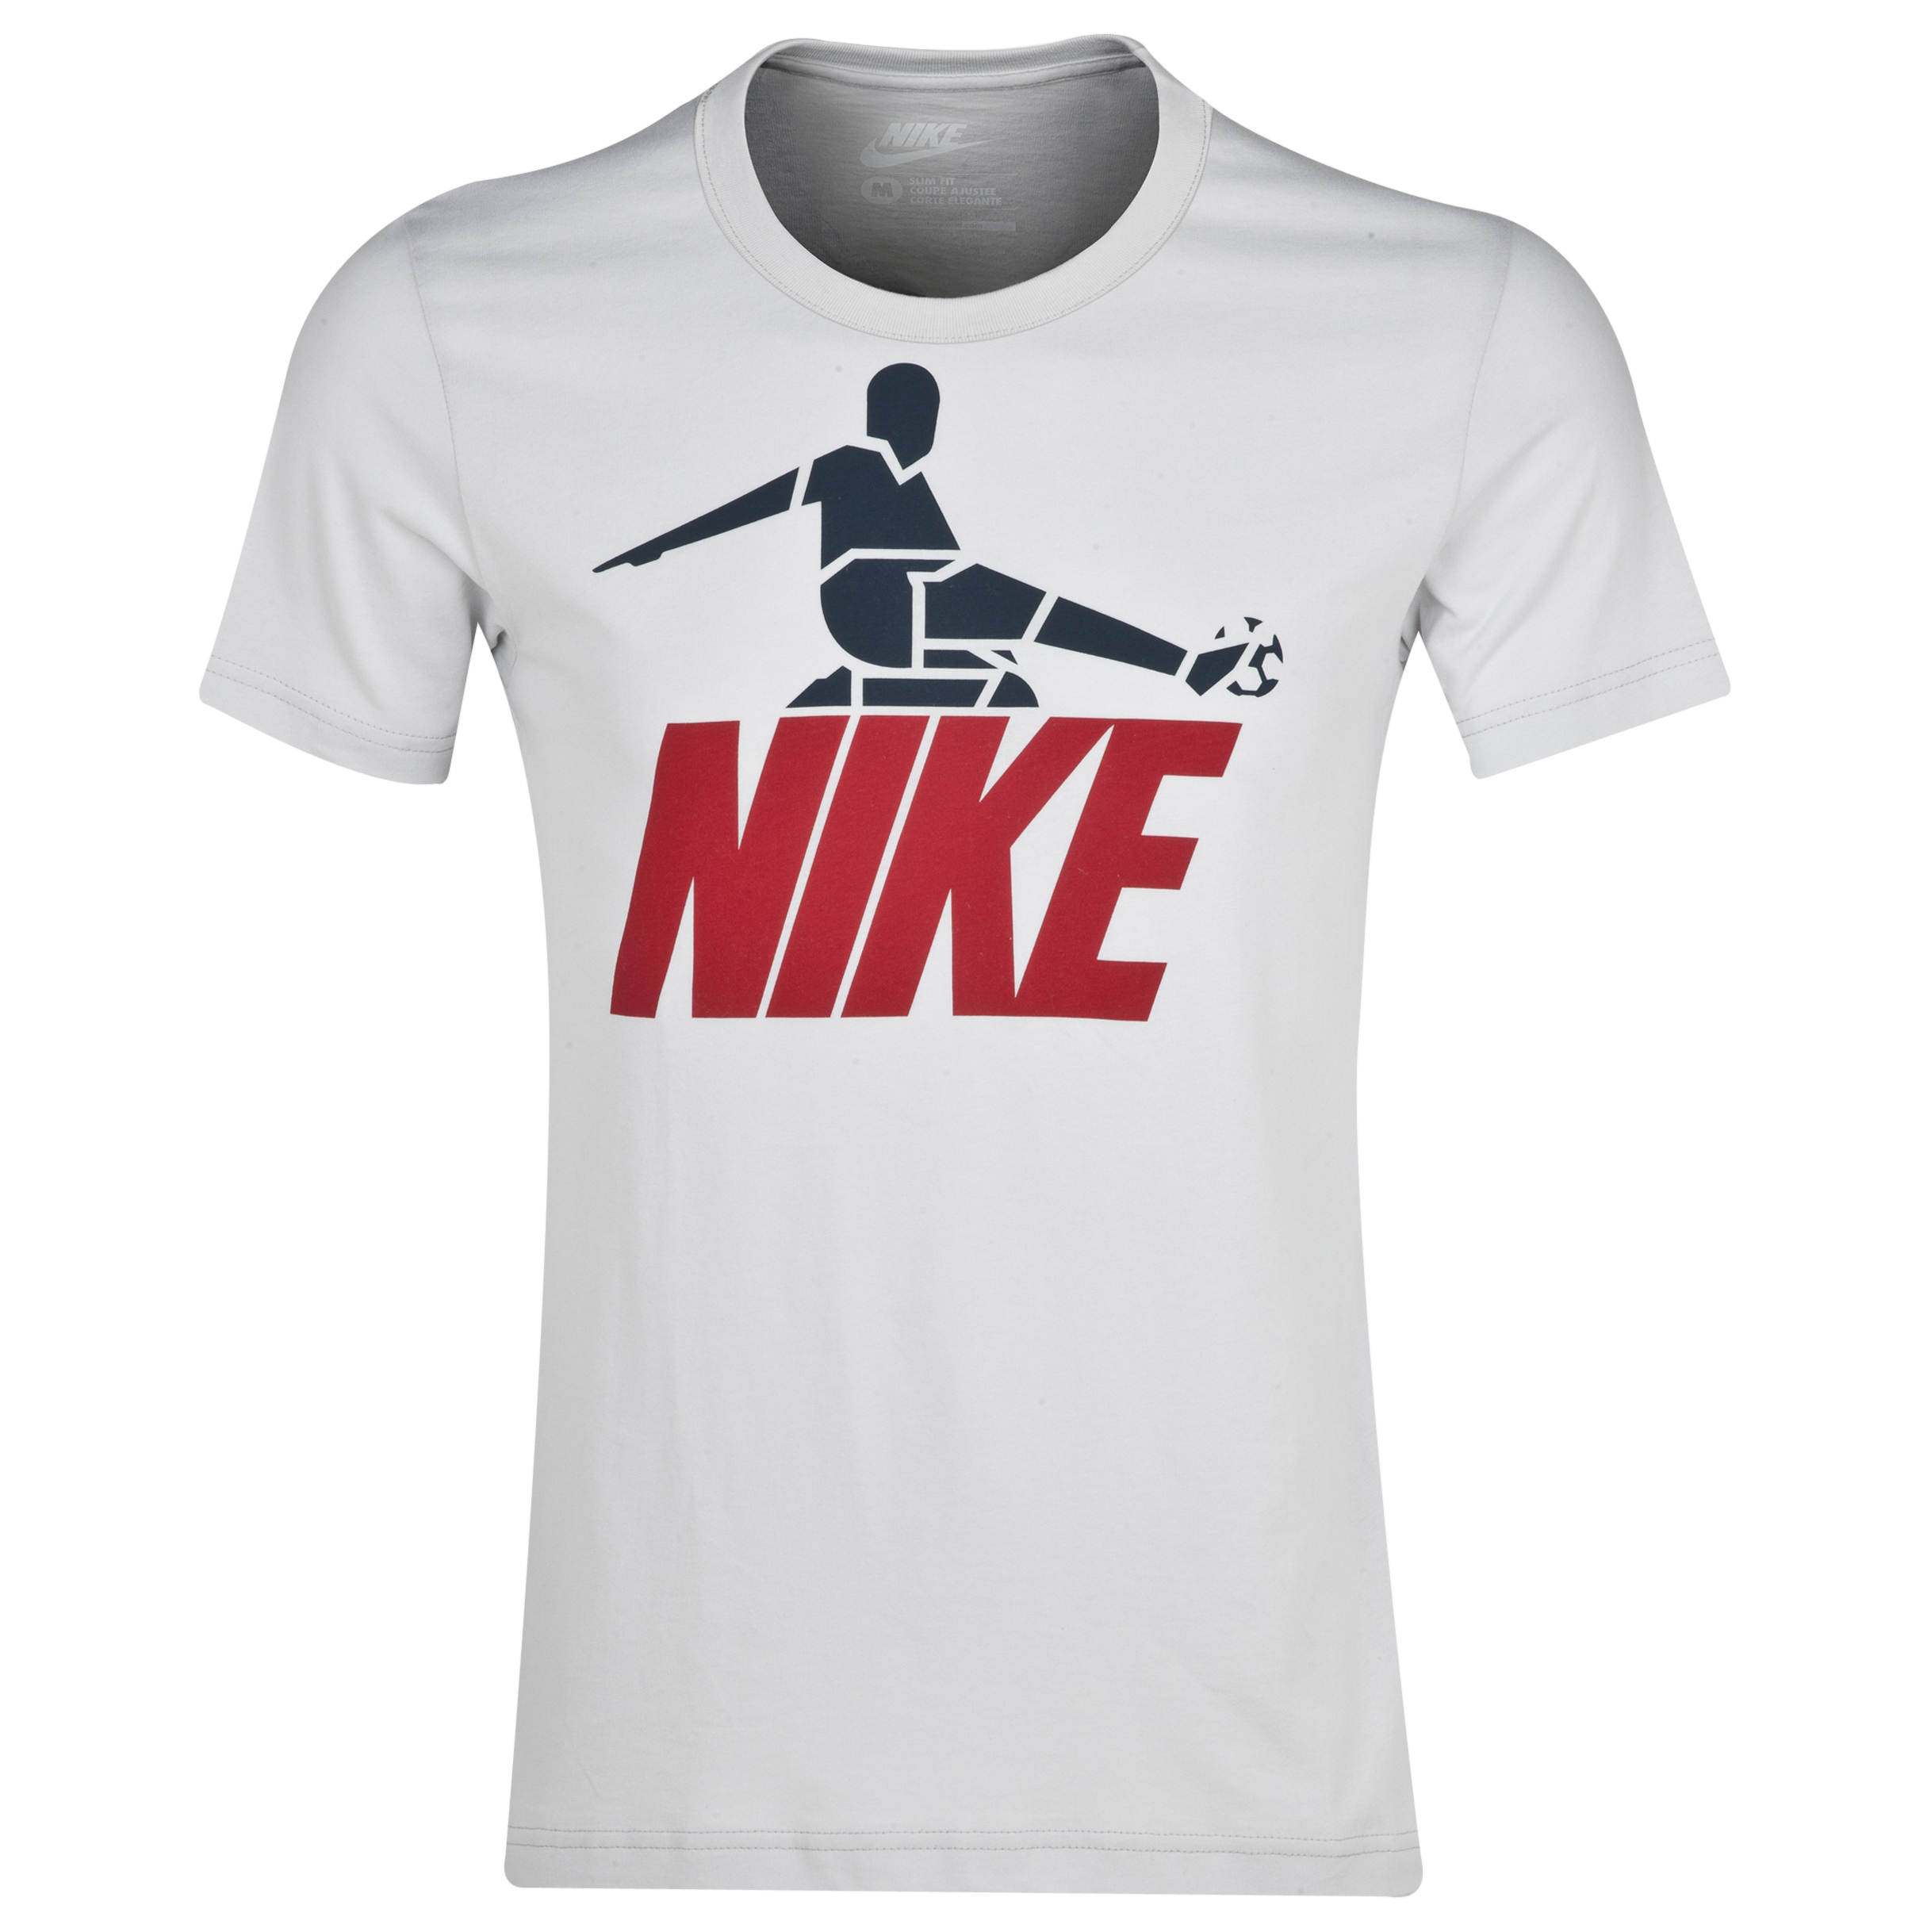 Nike Sliderman Tshirt Lt Grey